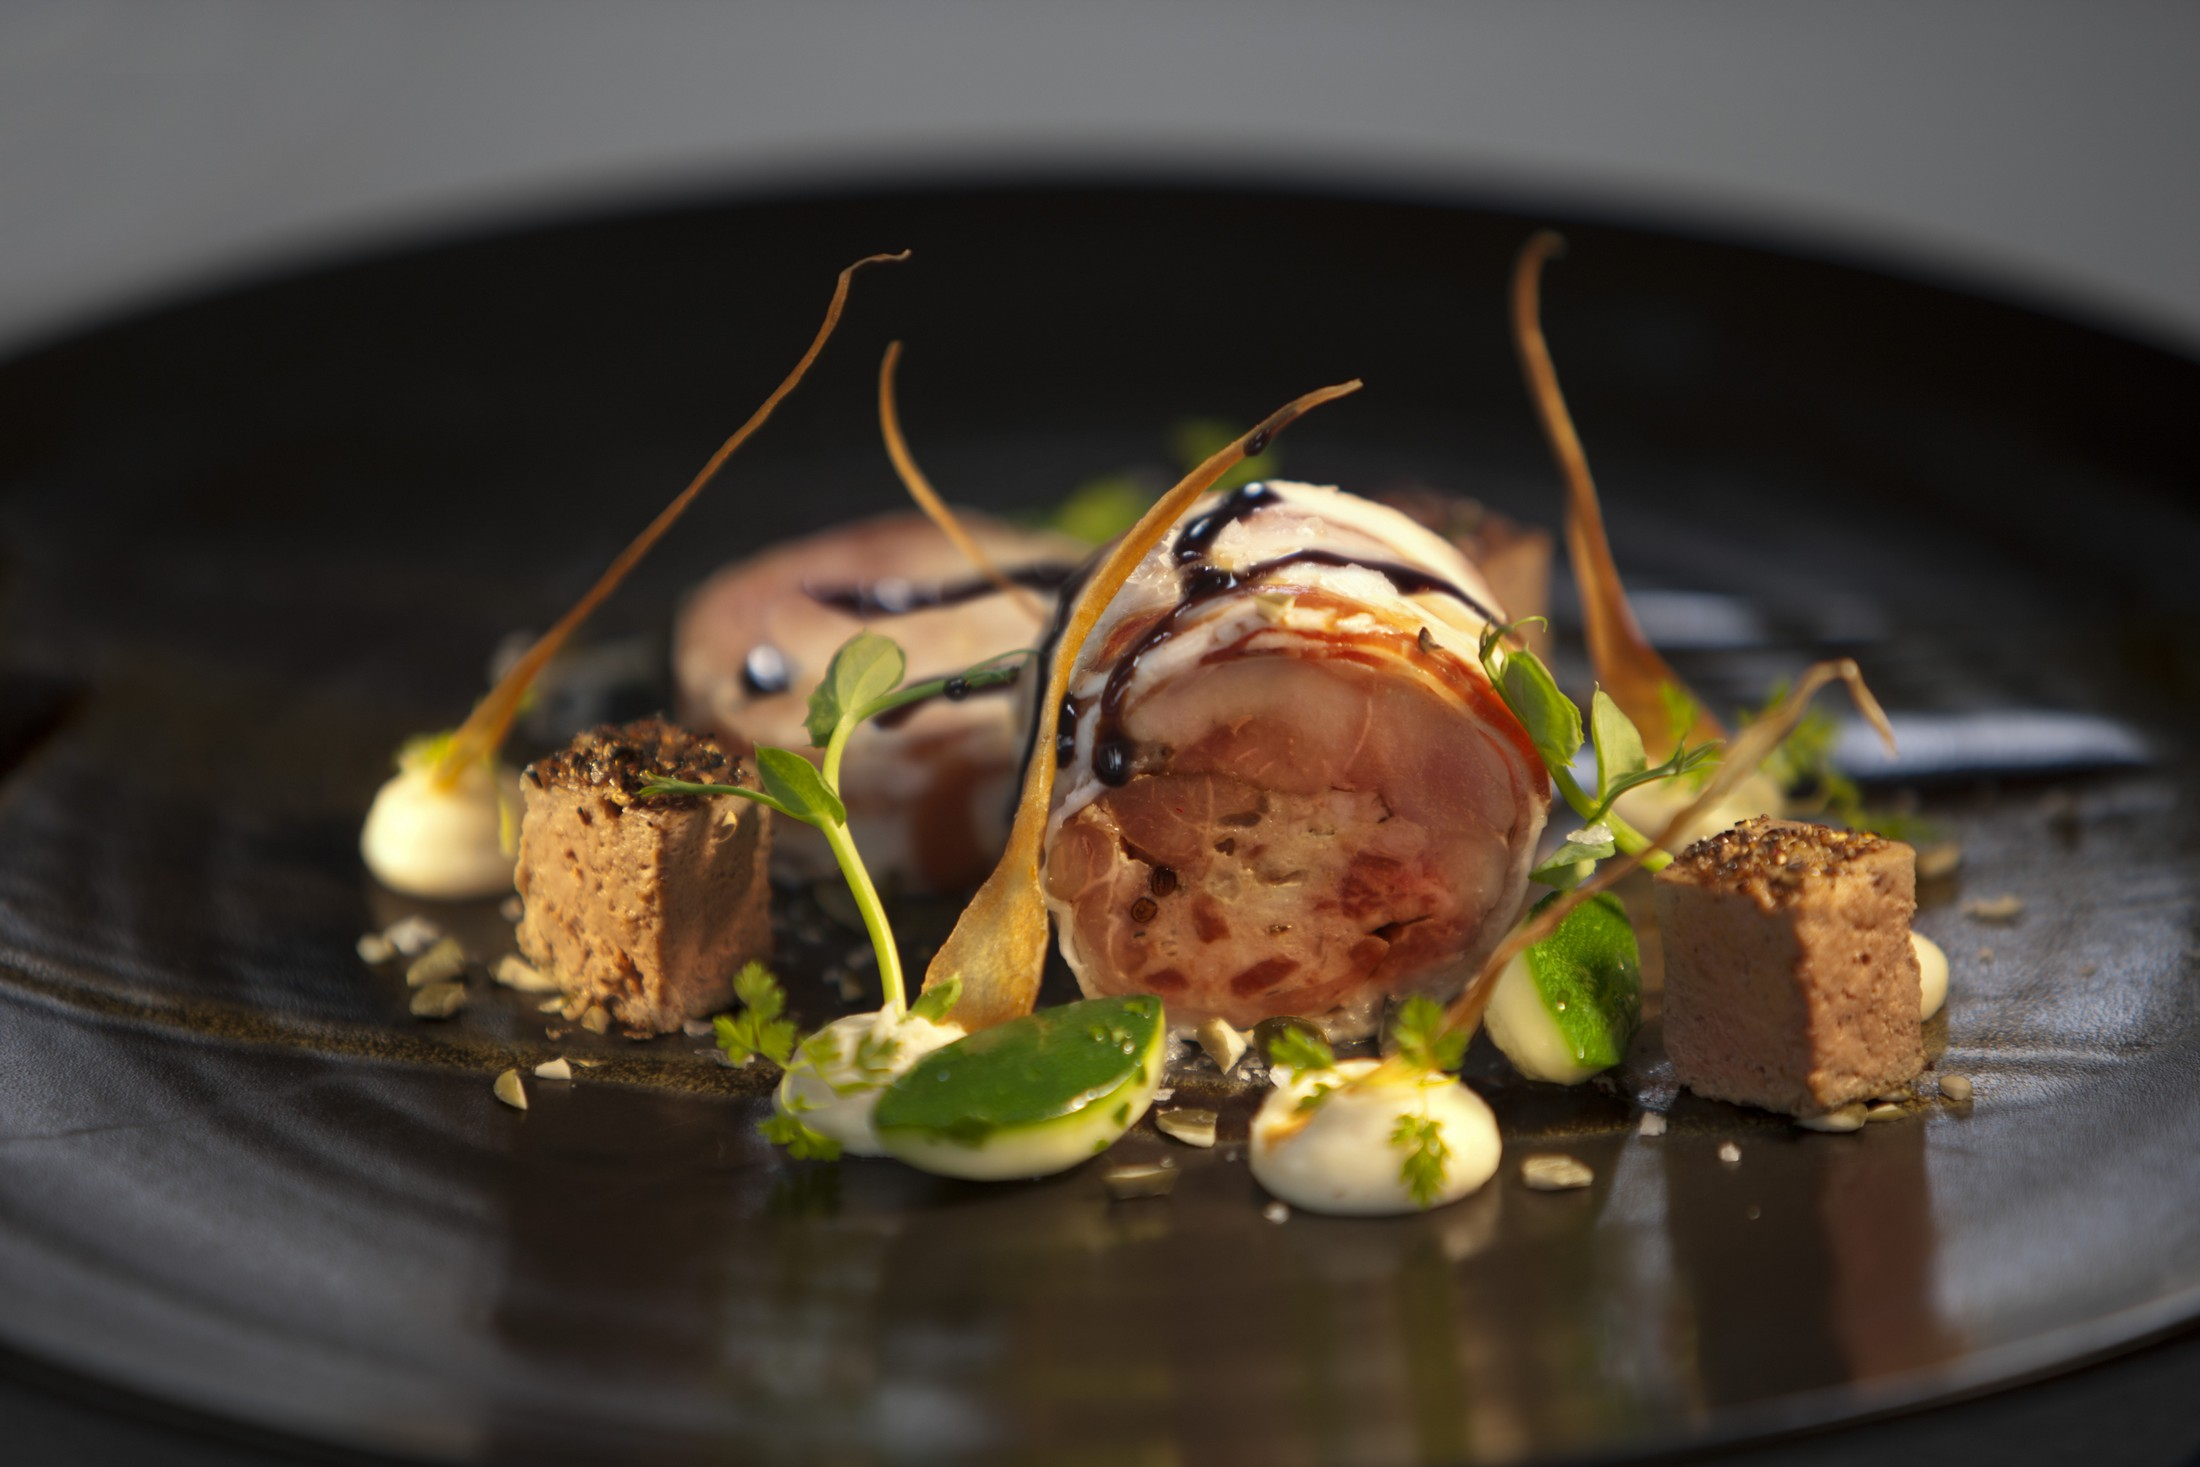 'Parma Wrapped Slow Cooked Rabbit, Palm Sugar Szechuan Rabbit Liver Brulee, Pumpkin Seed Gremolata'